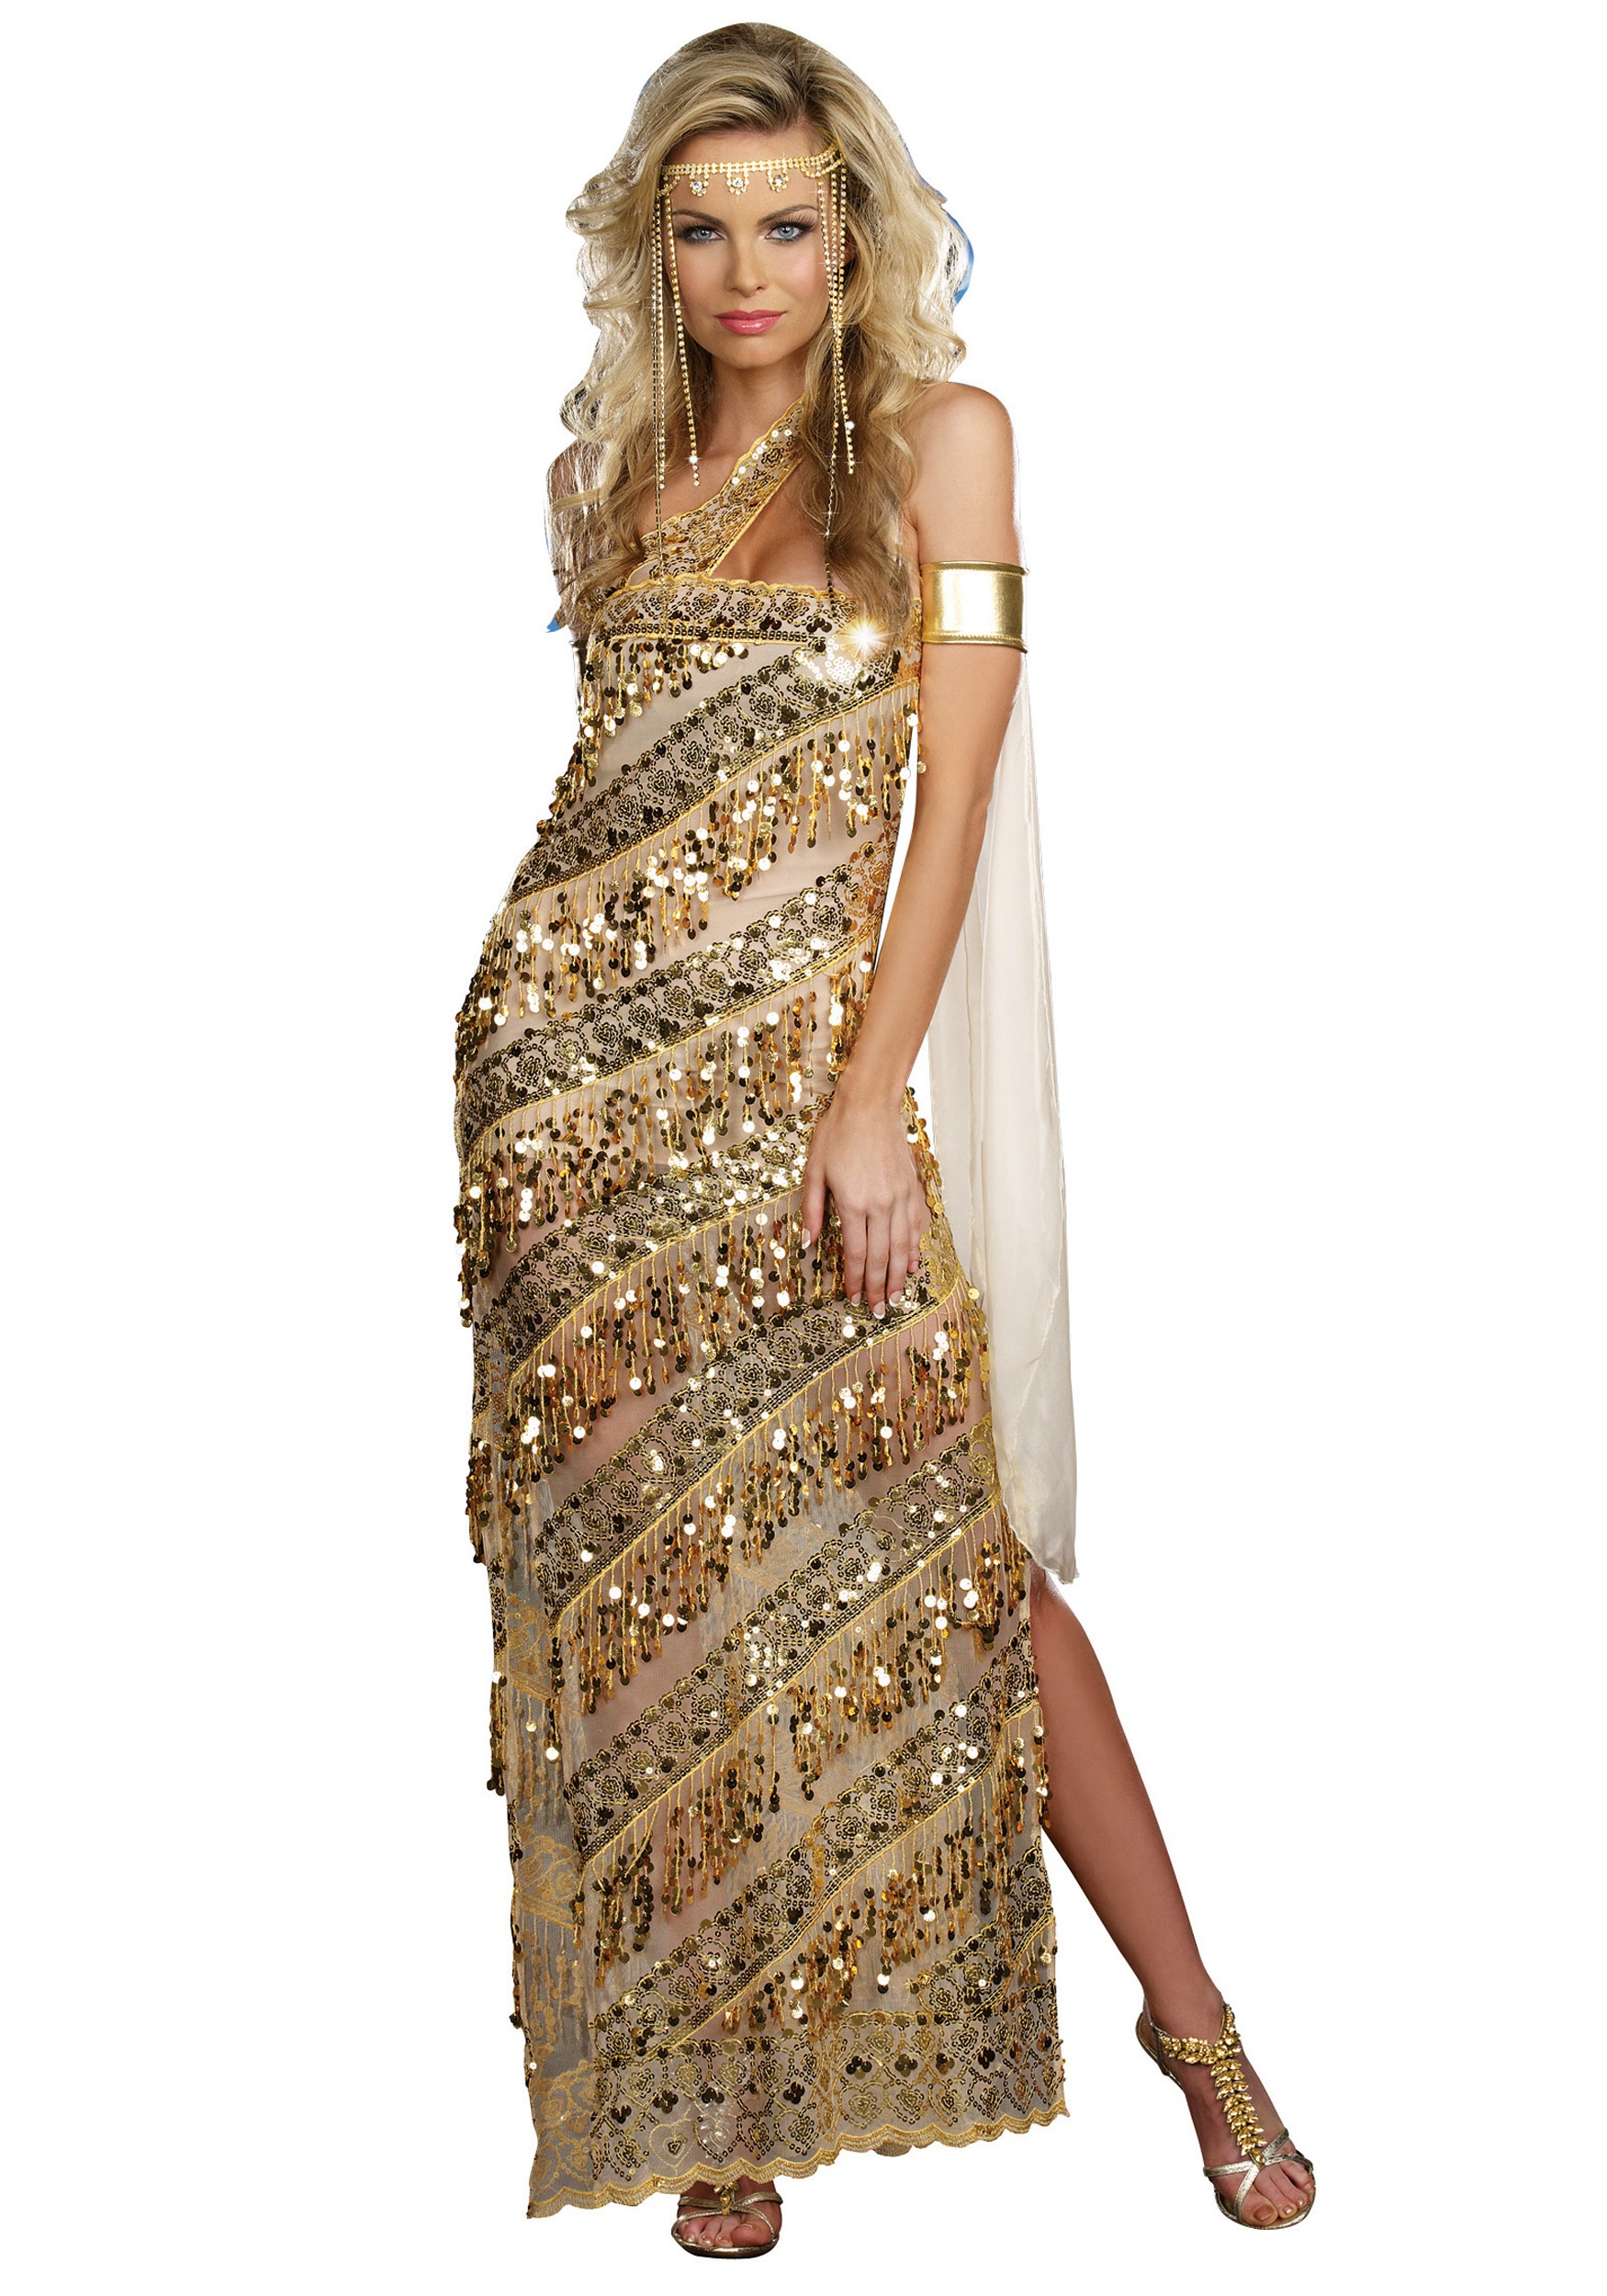 womens golden goddess costume - Helen Of Troy Halloween Costume